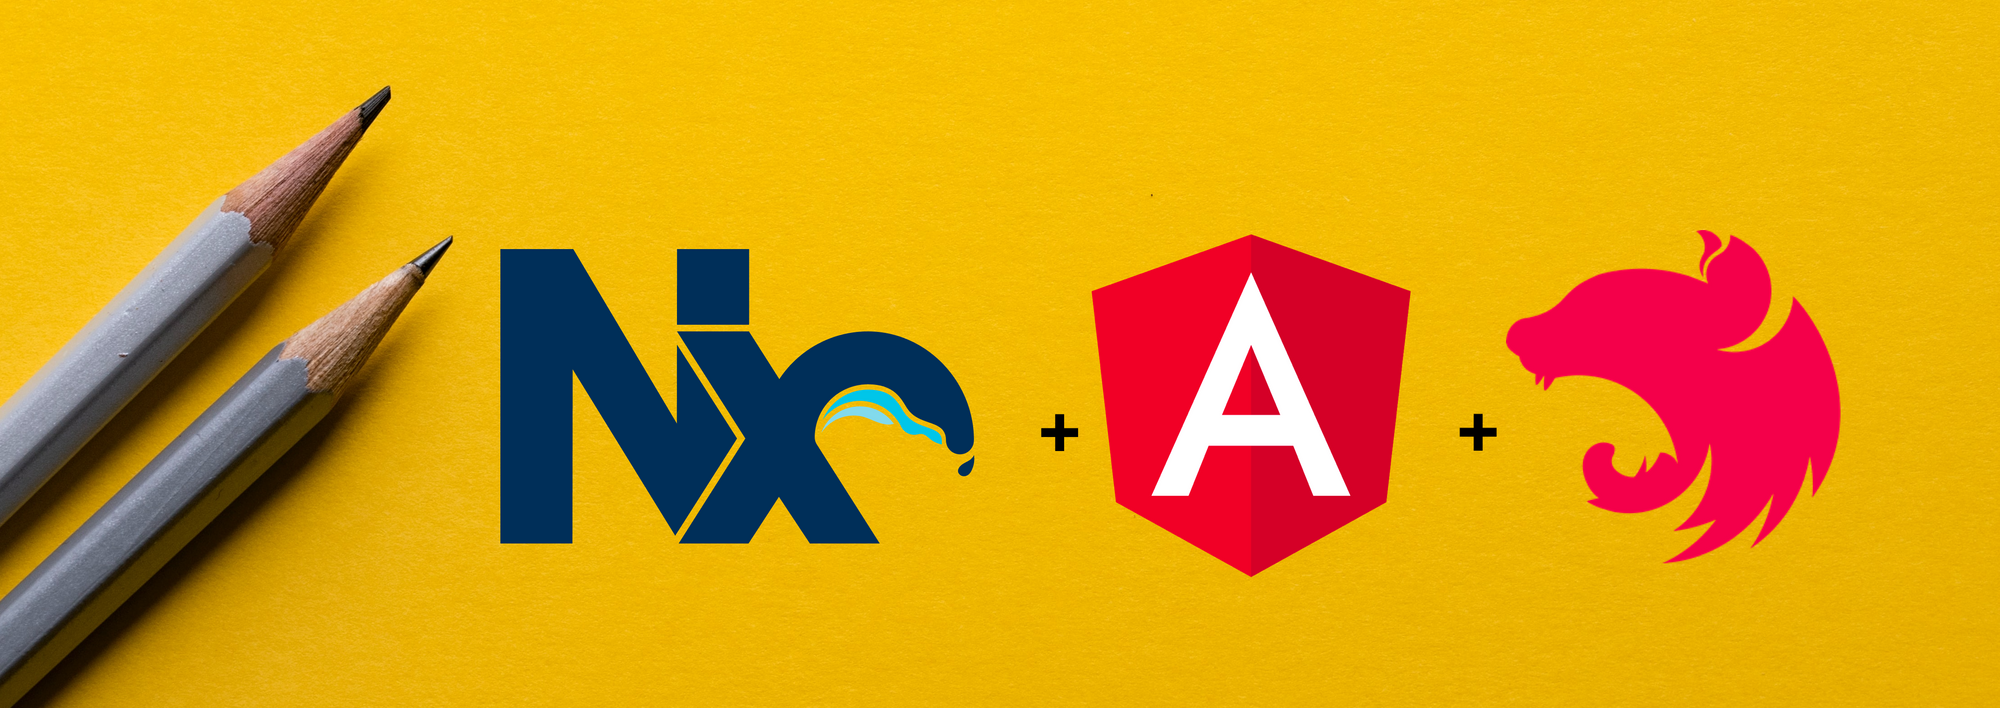 Code-sharing made easy in a full-stack app with Nx, Angular, and NestJS